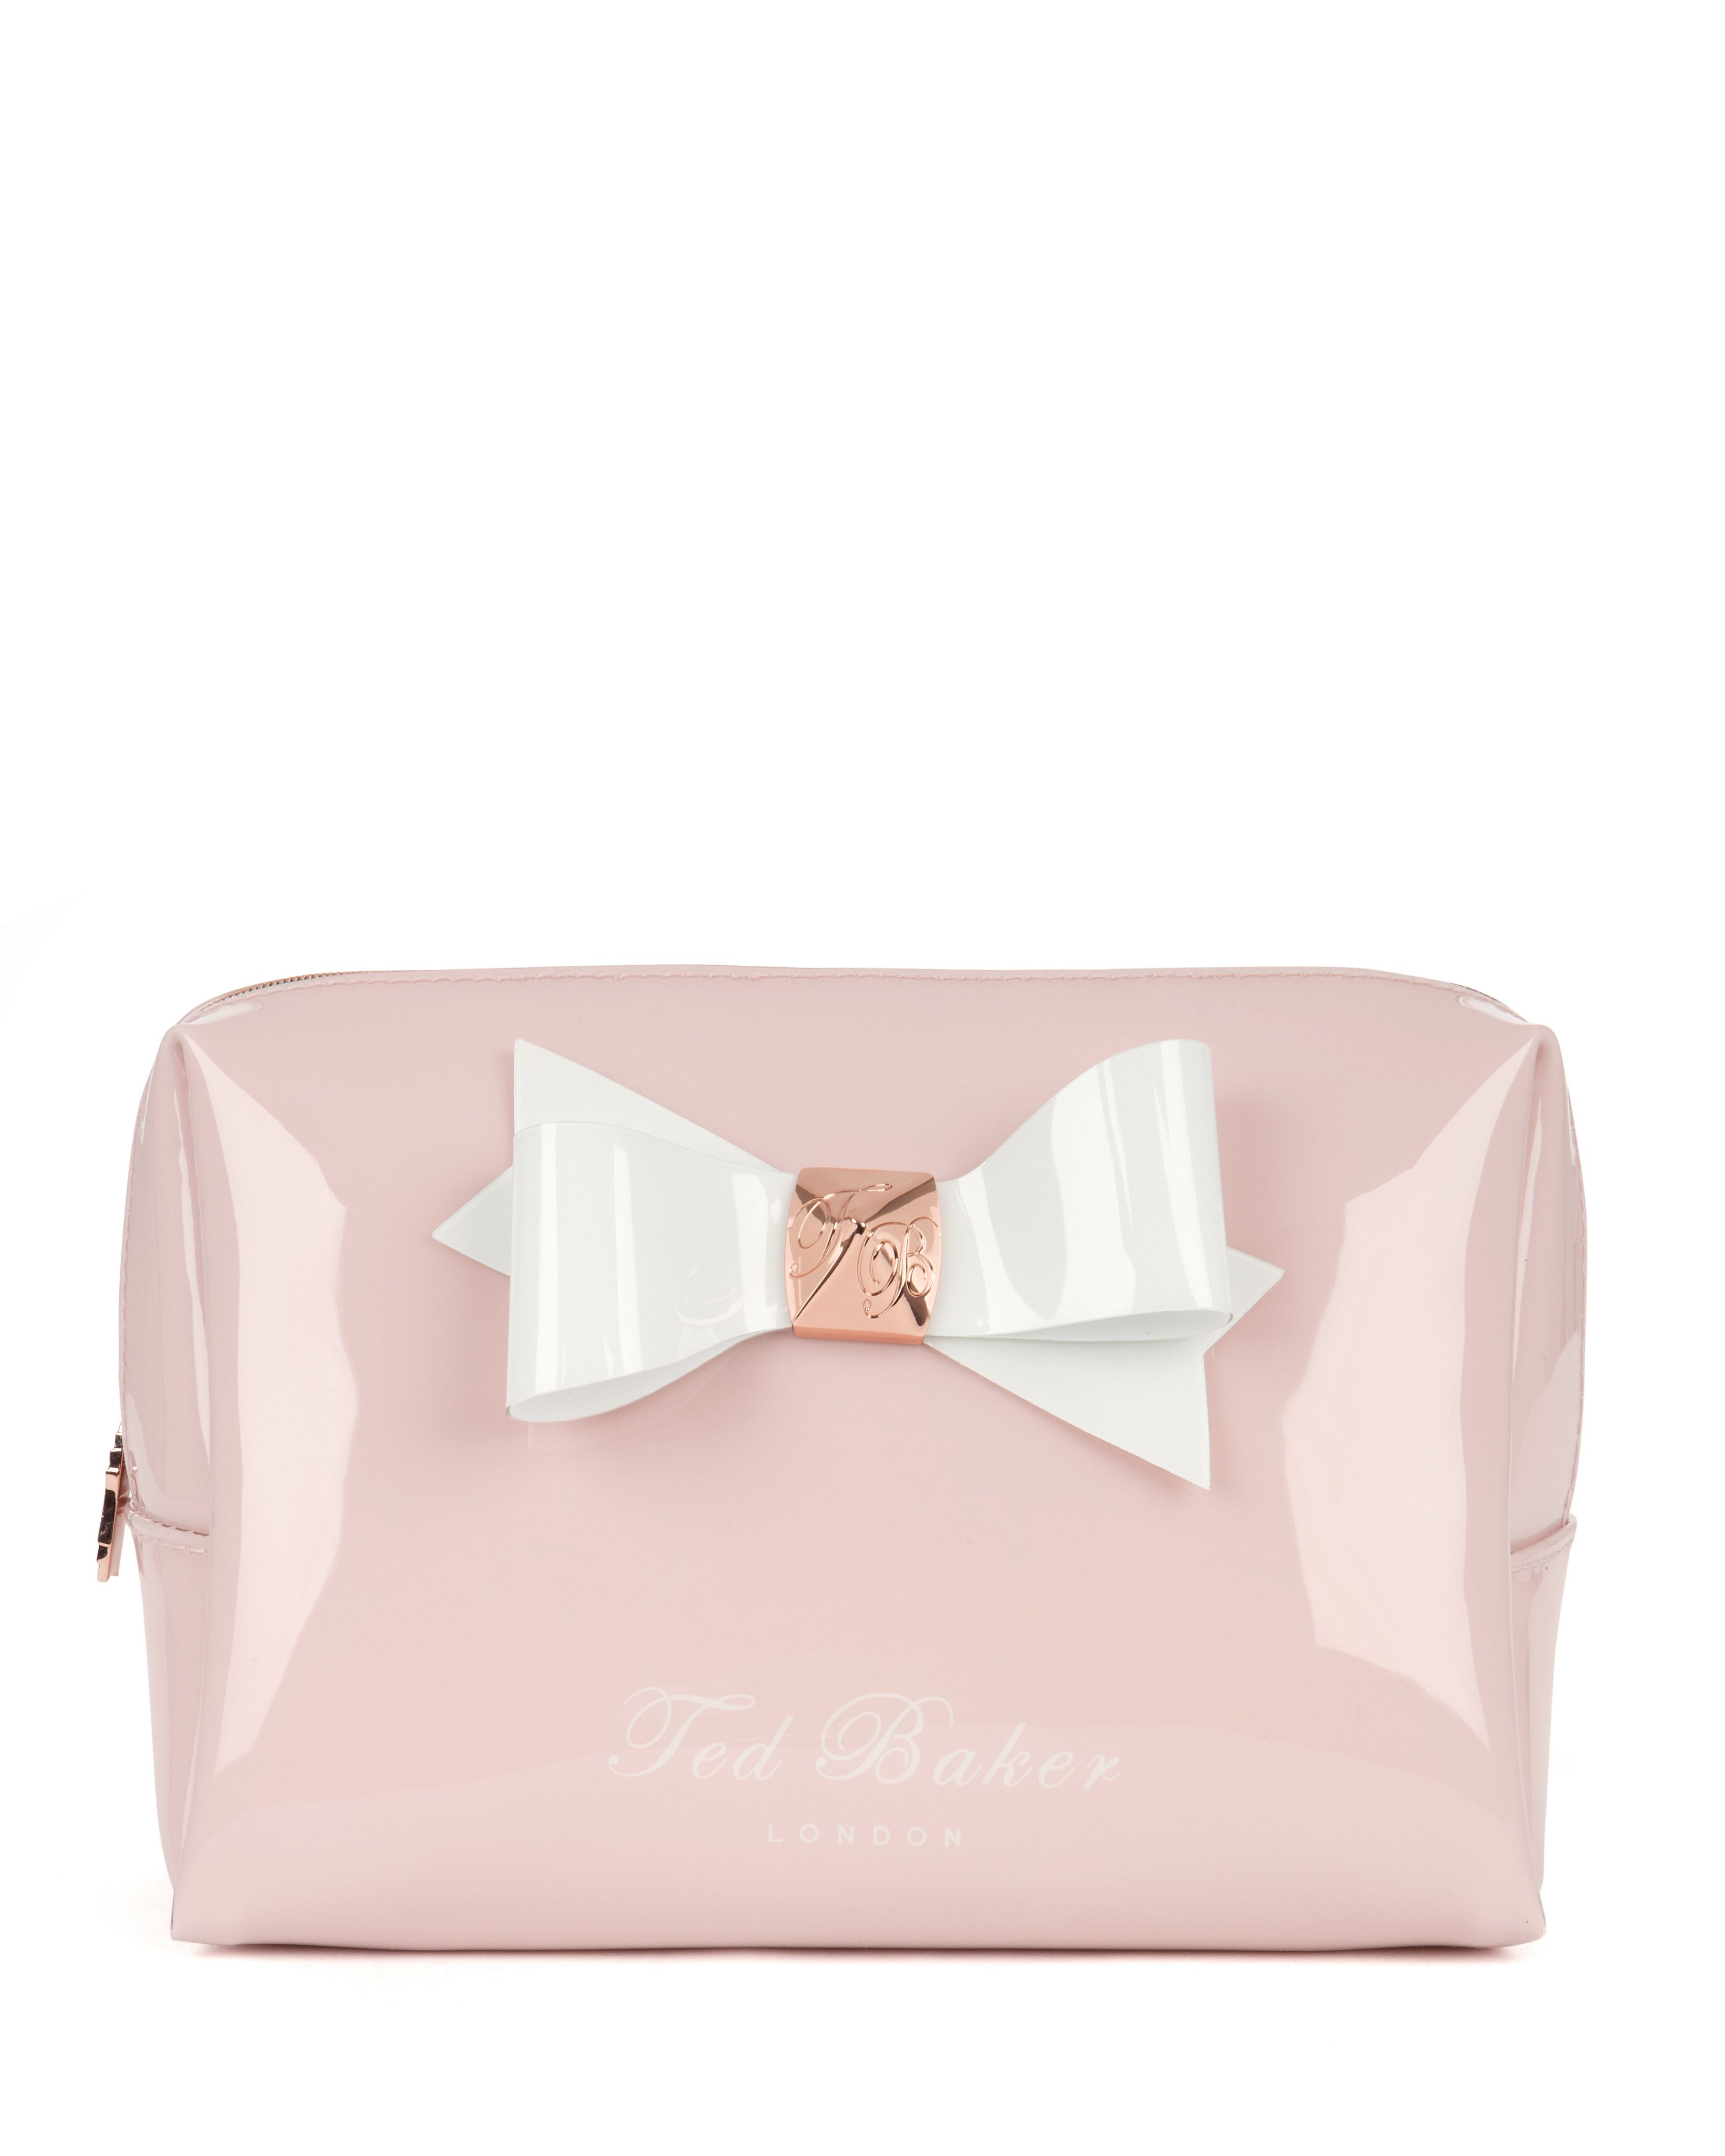 Leda wash bag with bow detail